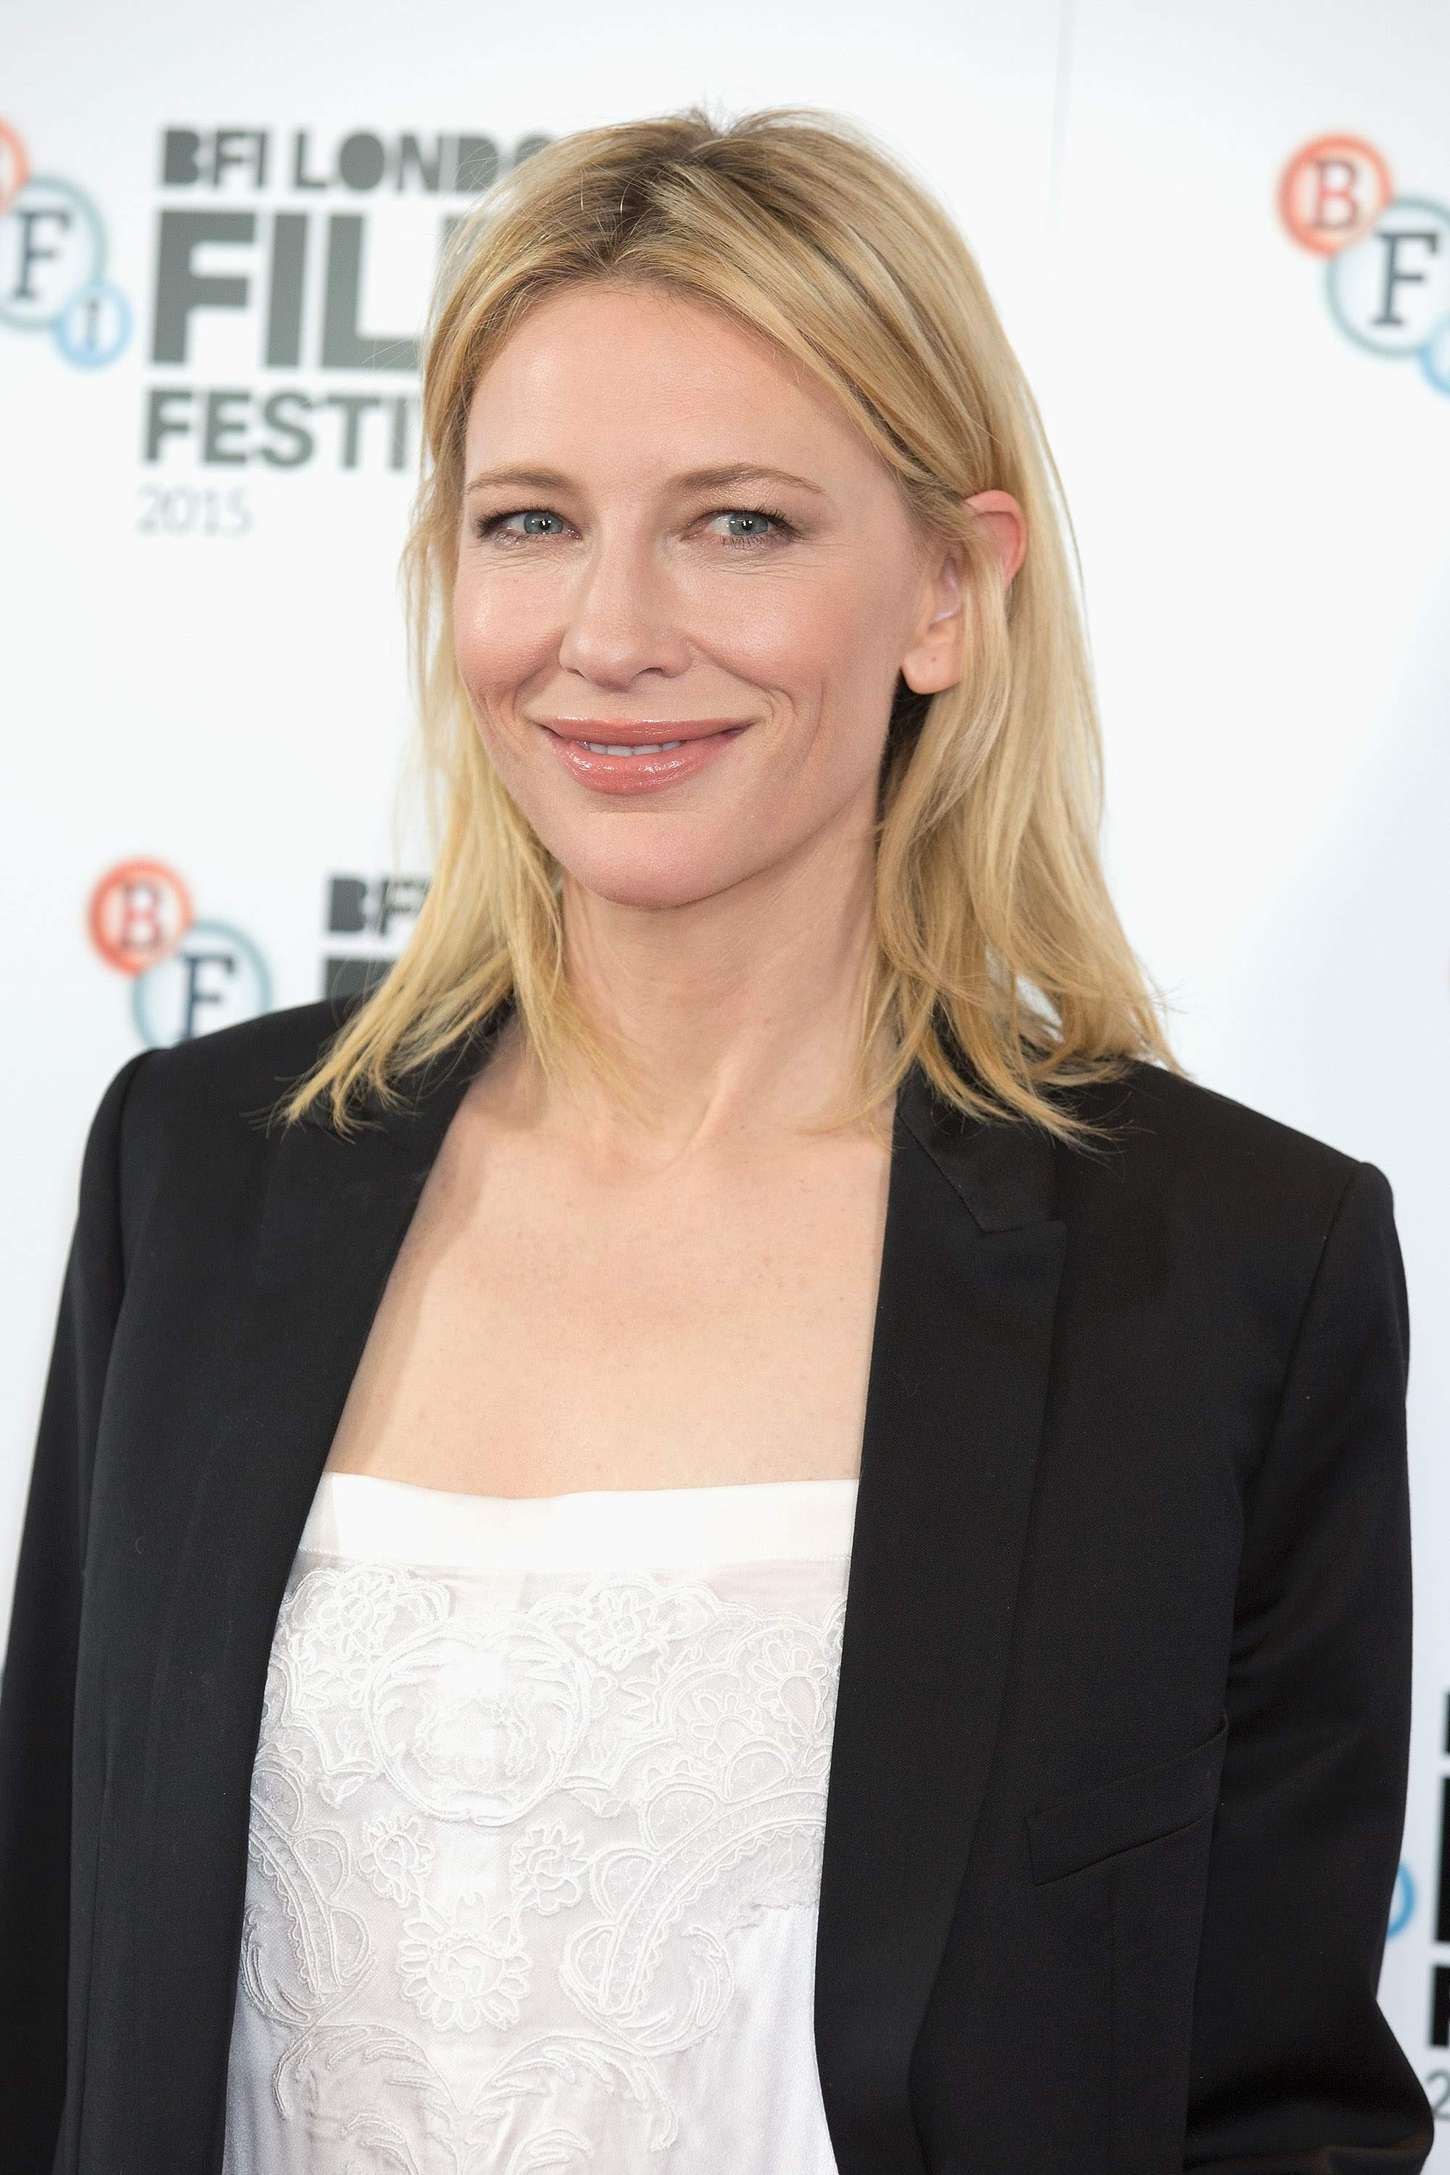 Cate Blanchett - 'Carol' Photocall at BFI London Film Festival